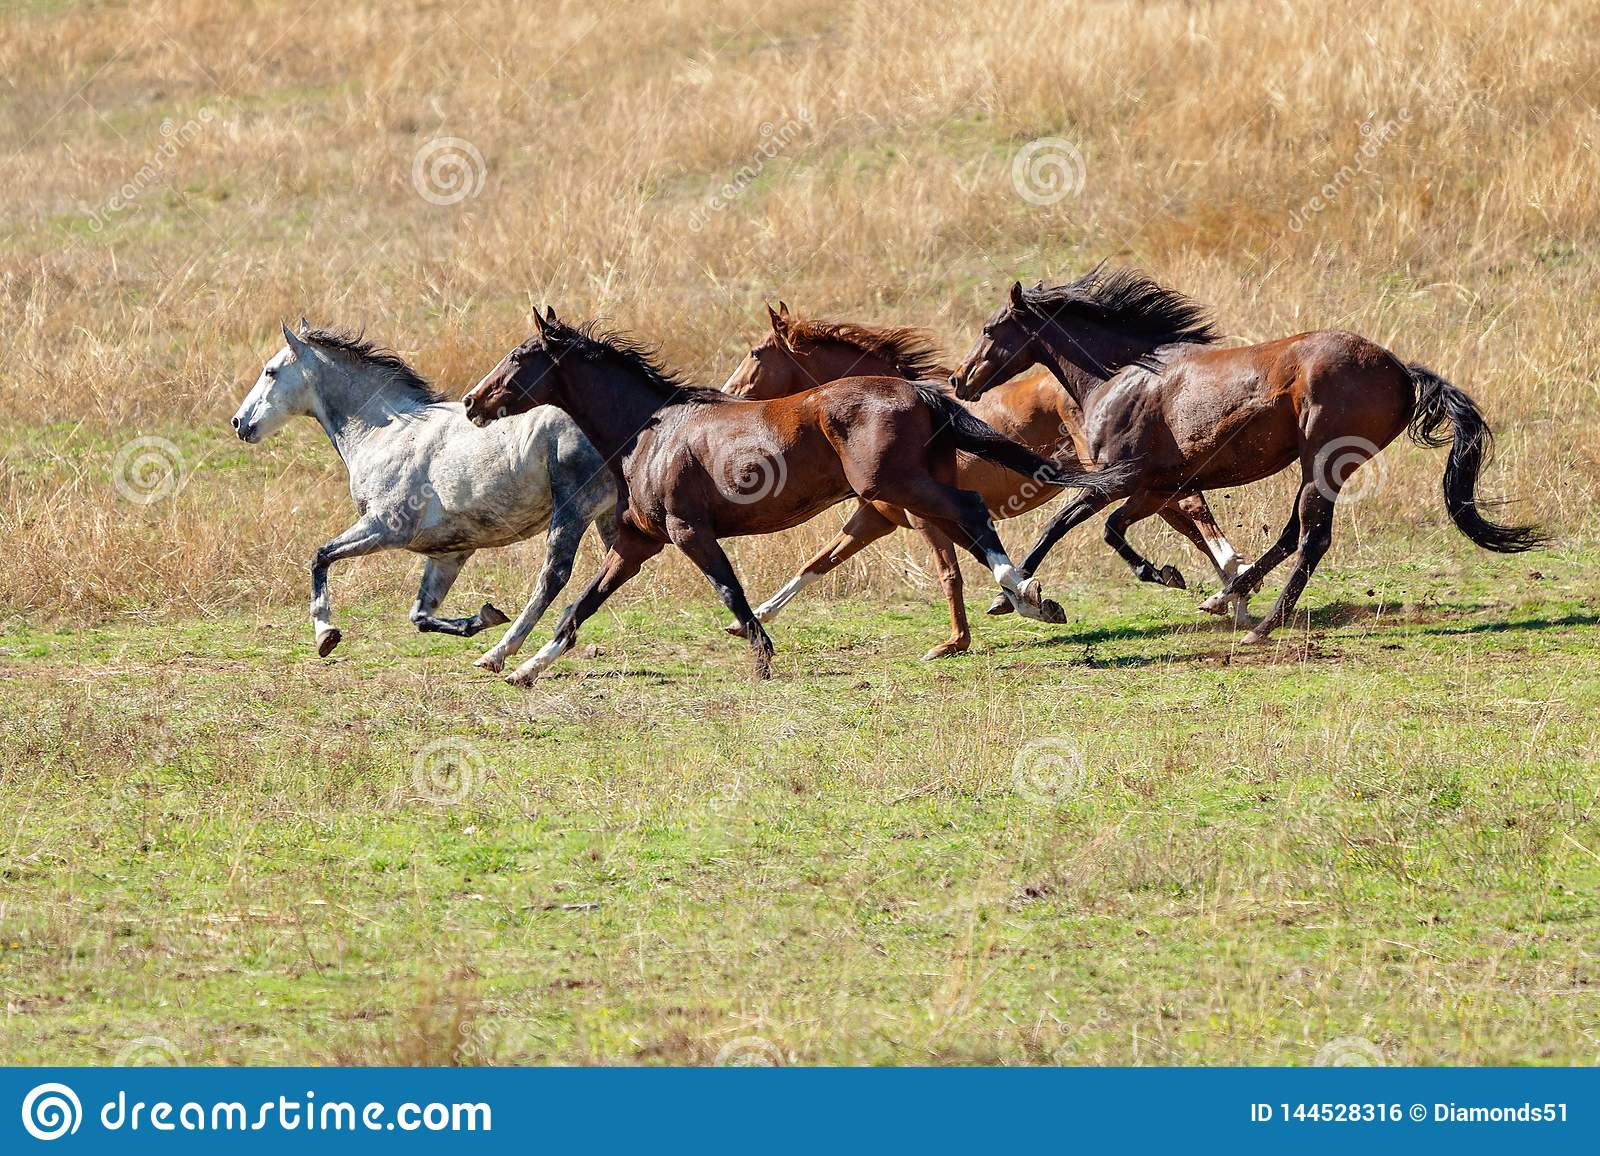 A Herd Of Wild Horses Racing Across Country Stock Photo Image Of Herding Freedom 144528316